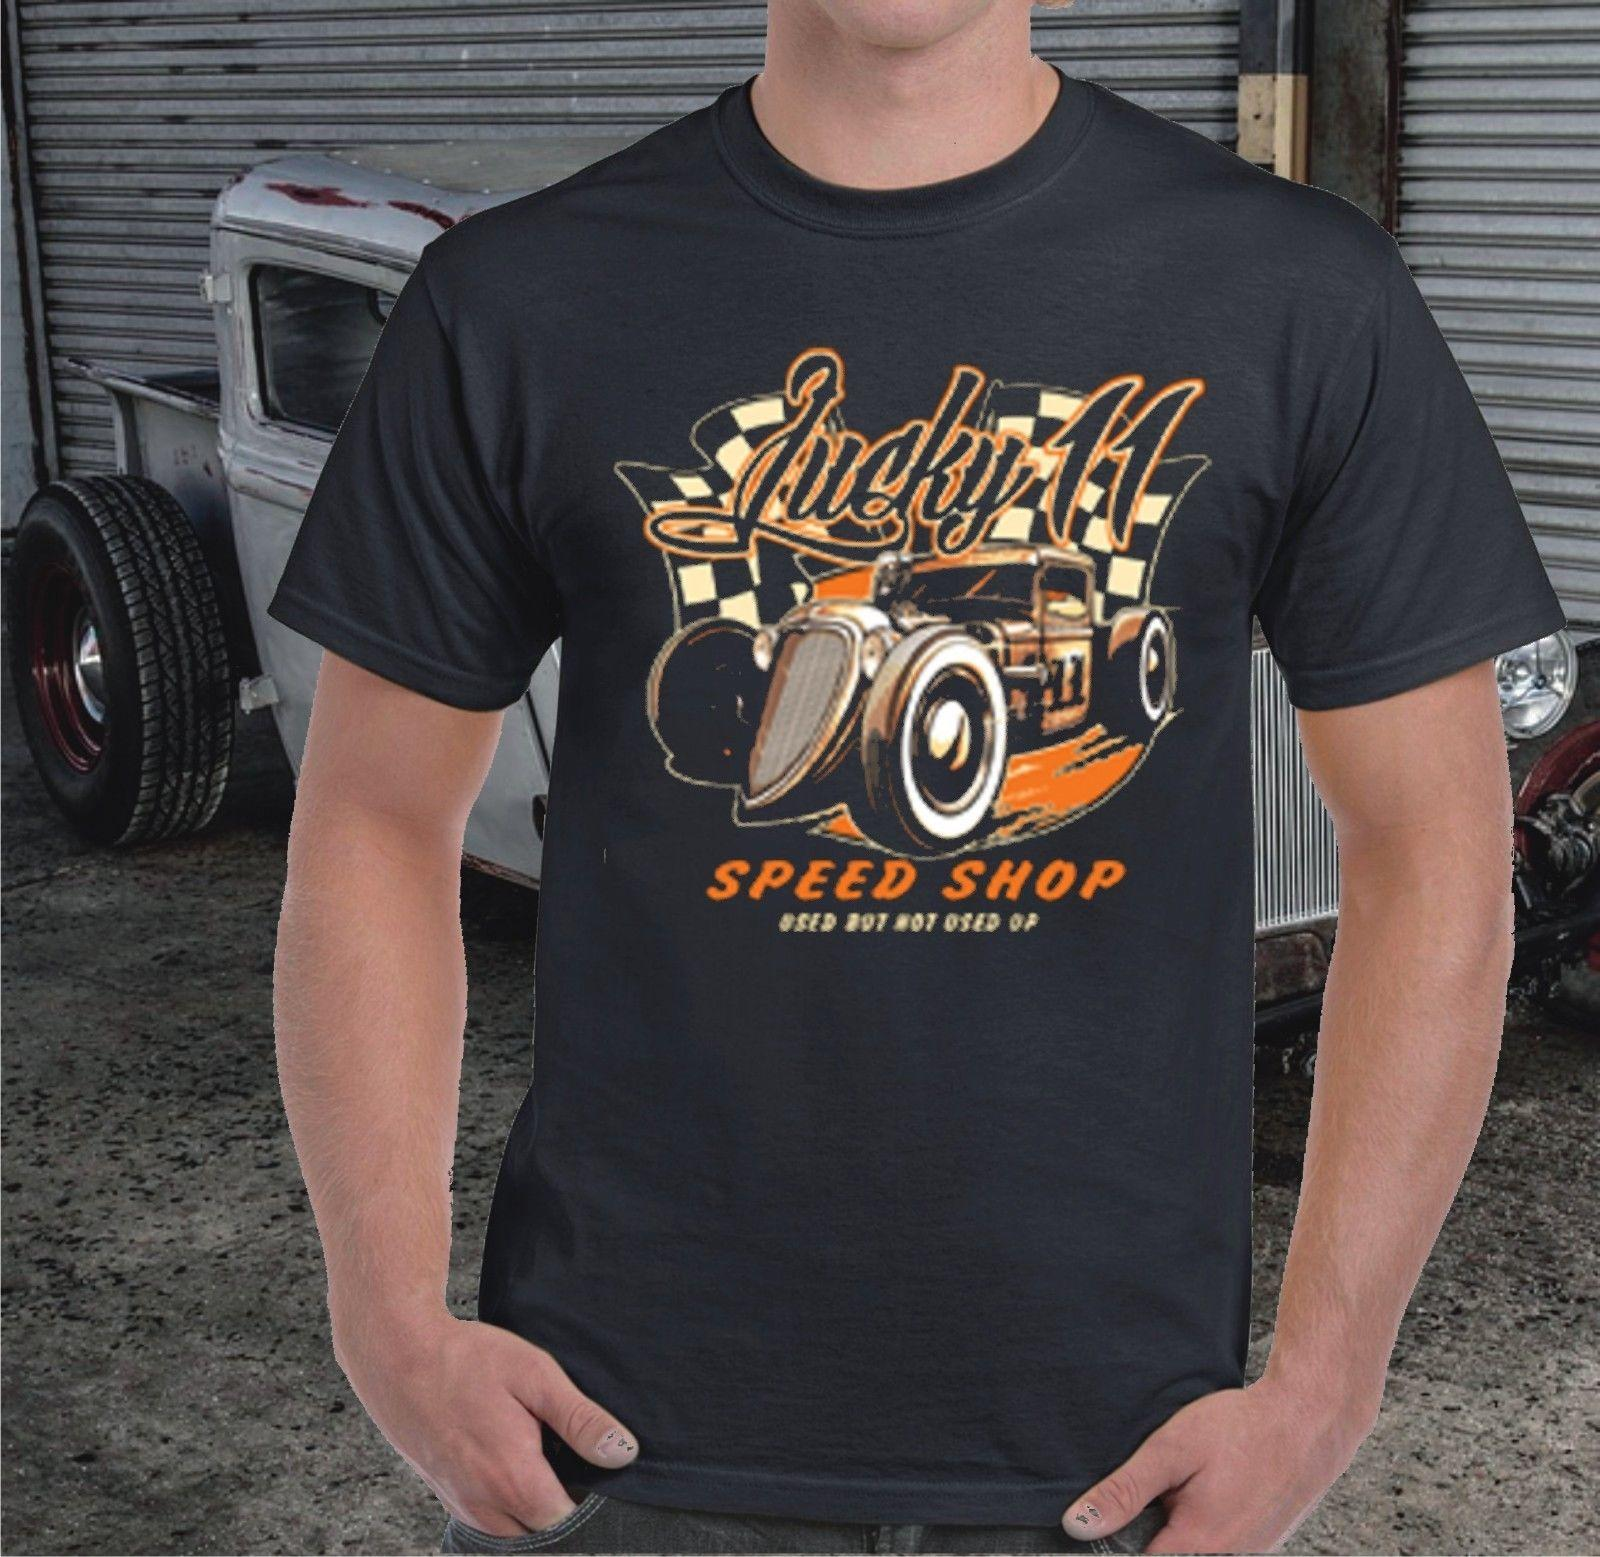 Hot Rod T Shirts >> Lucky 11 Speed Shop Hot Rod Rat Rod T Shirt Online T Shirt Buy